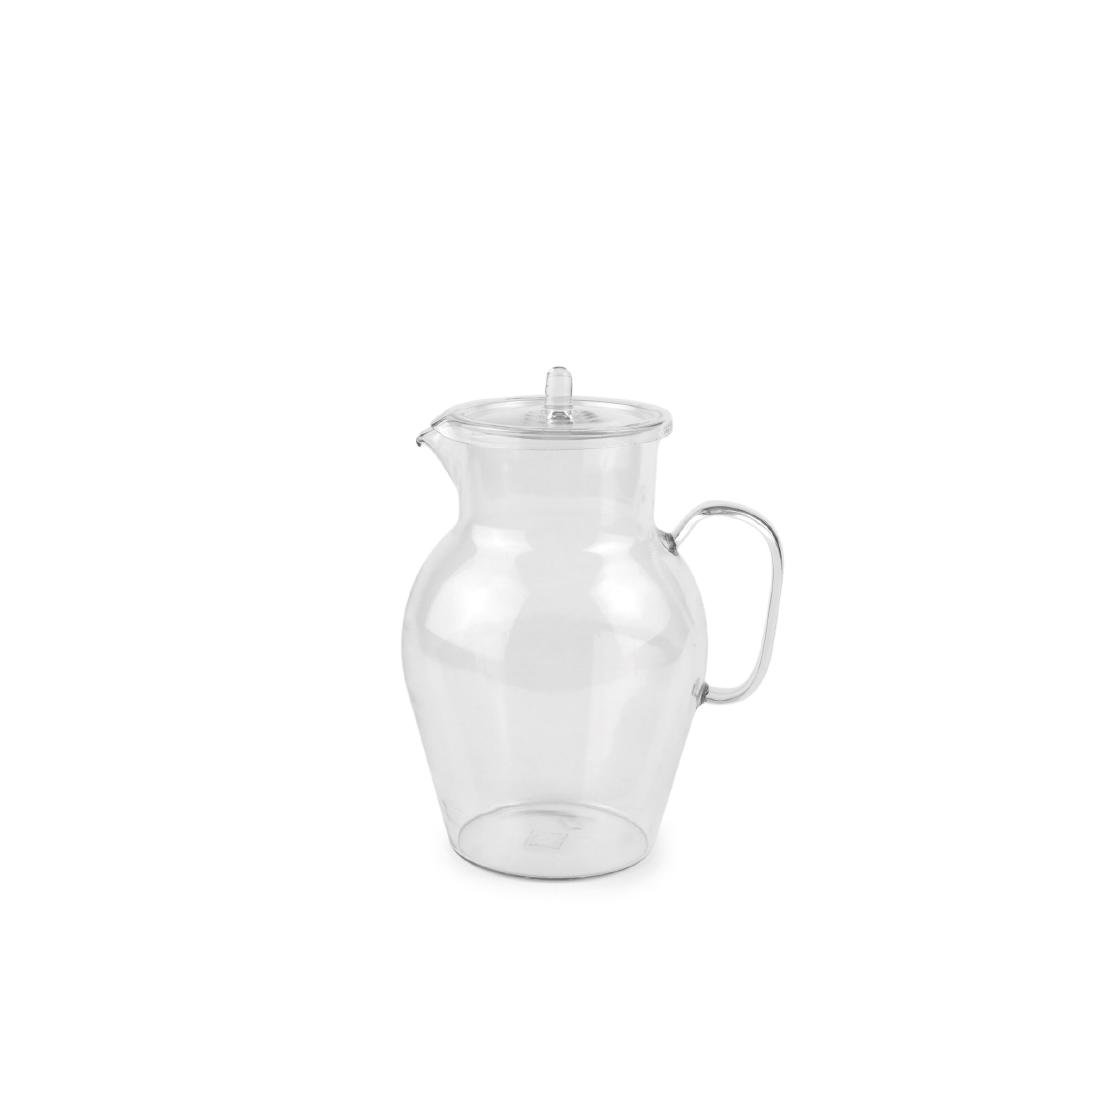 Punch jug with lid, 1933-35